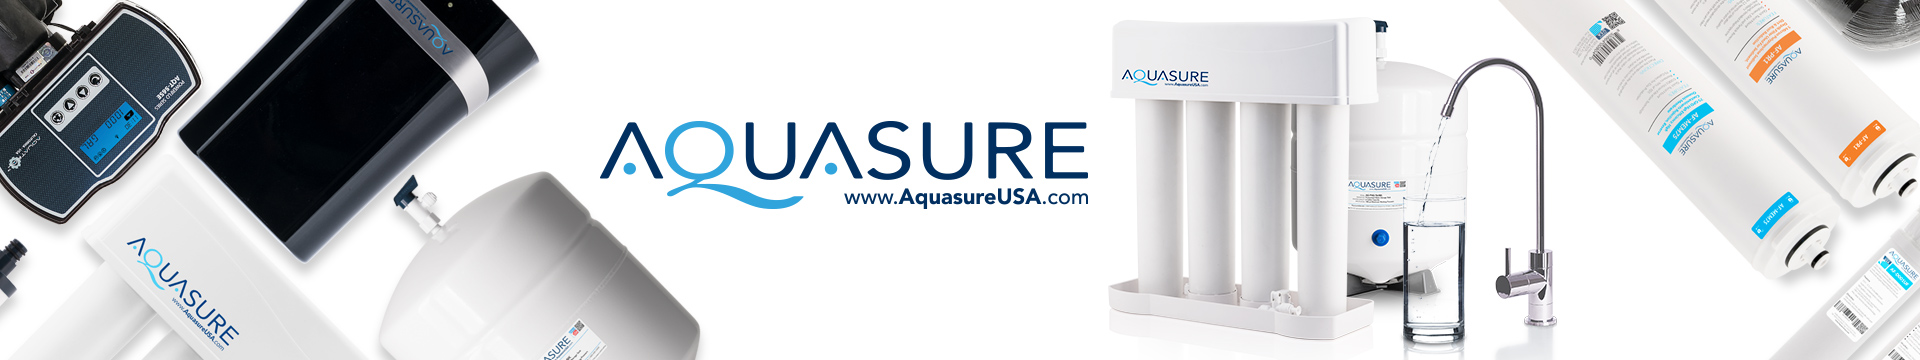 Aquasure Main 01